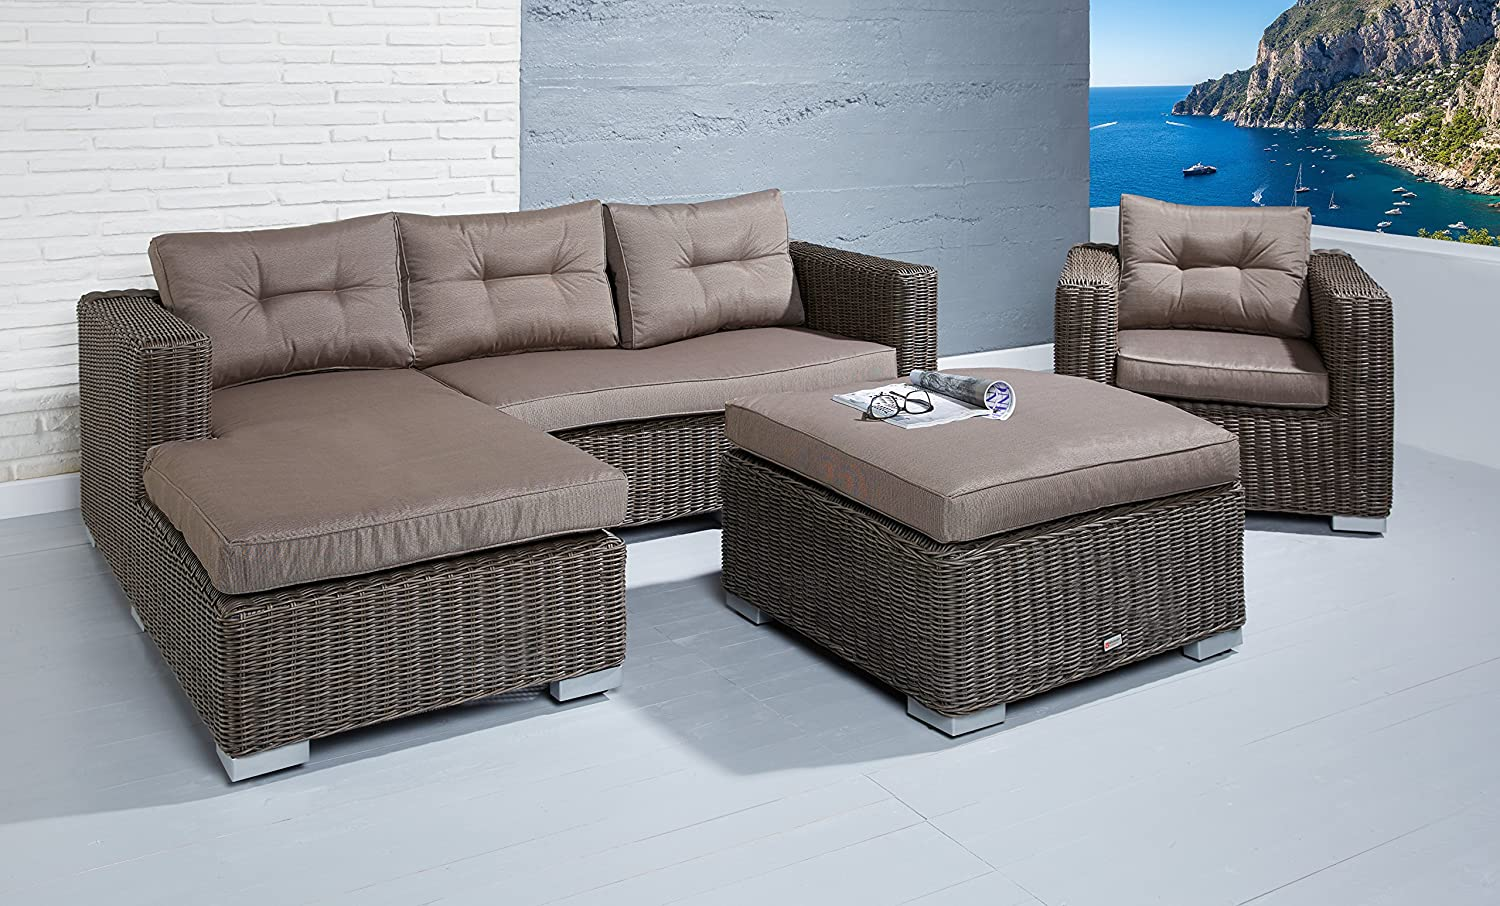 poly rattan loungegarnitur sitzgruppe julia cappuccino mit. Black Bedroom Furniture Sets. Home Design Ideas